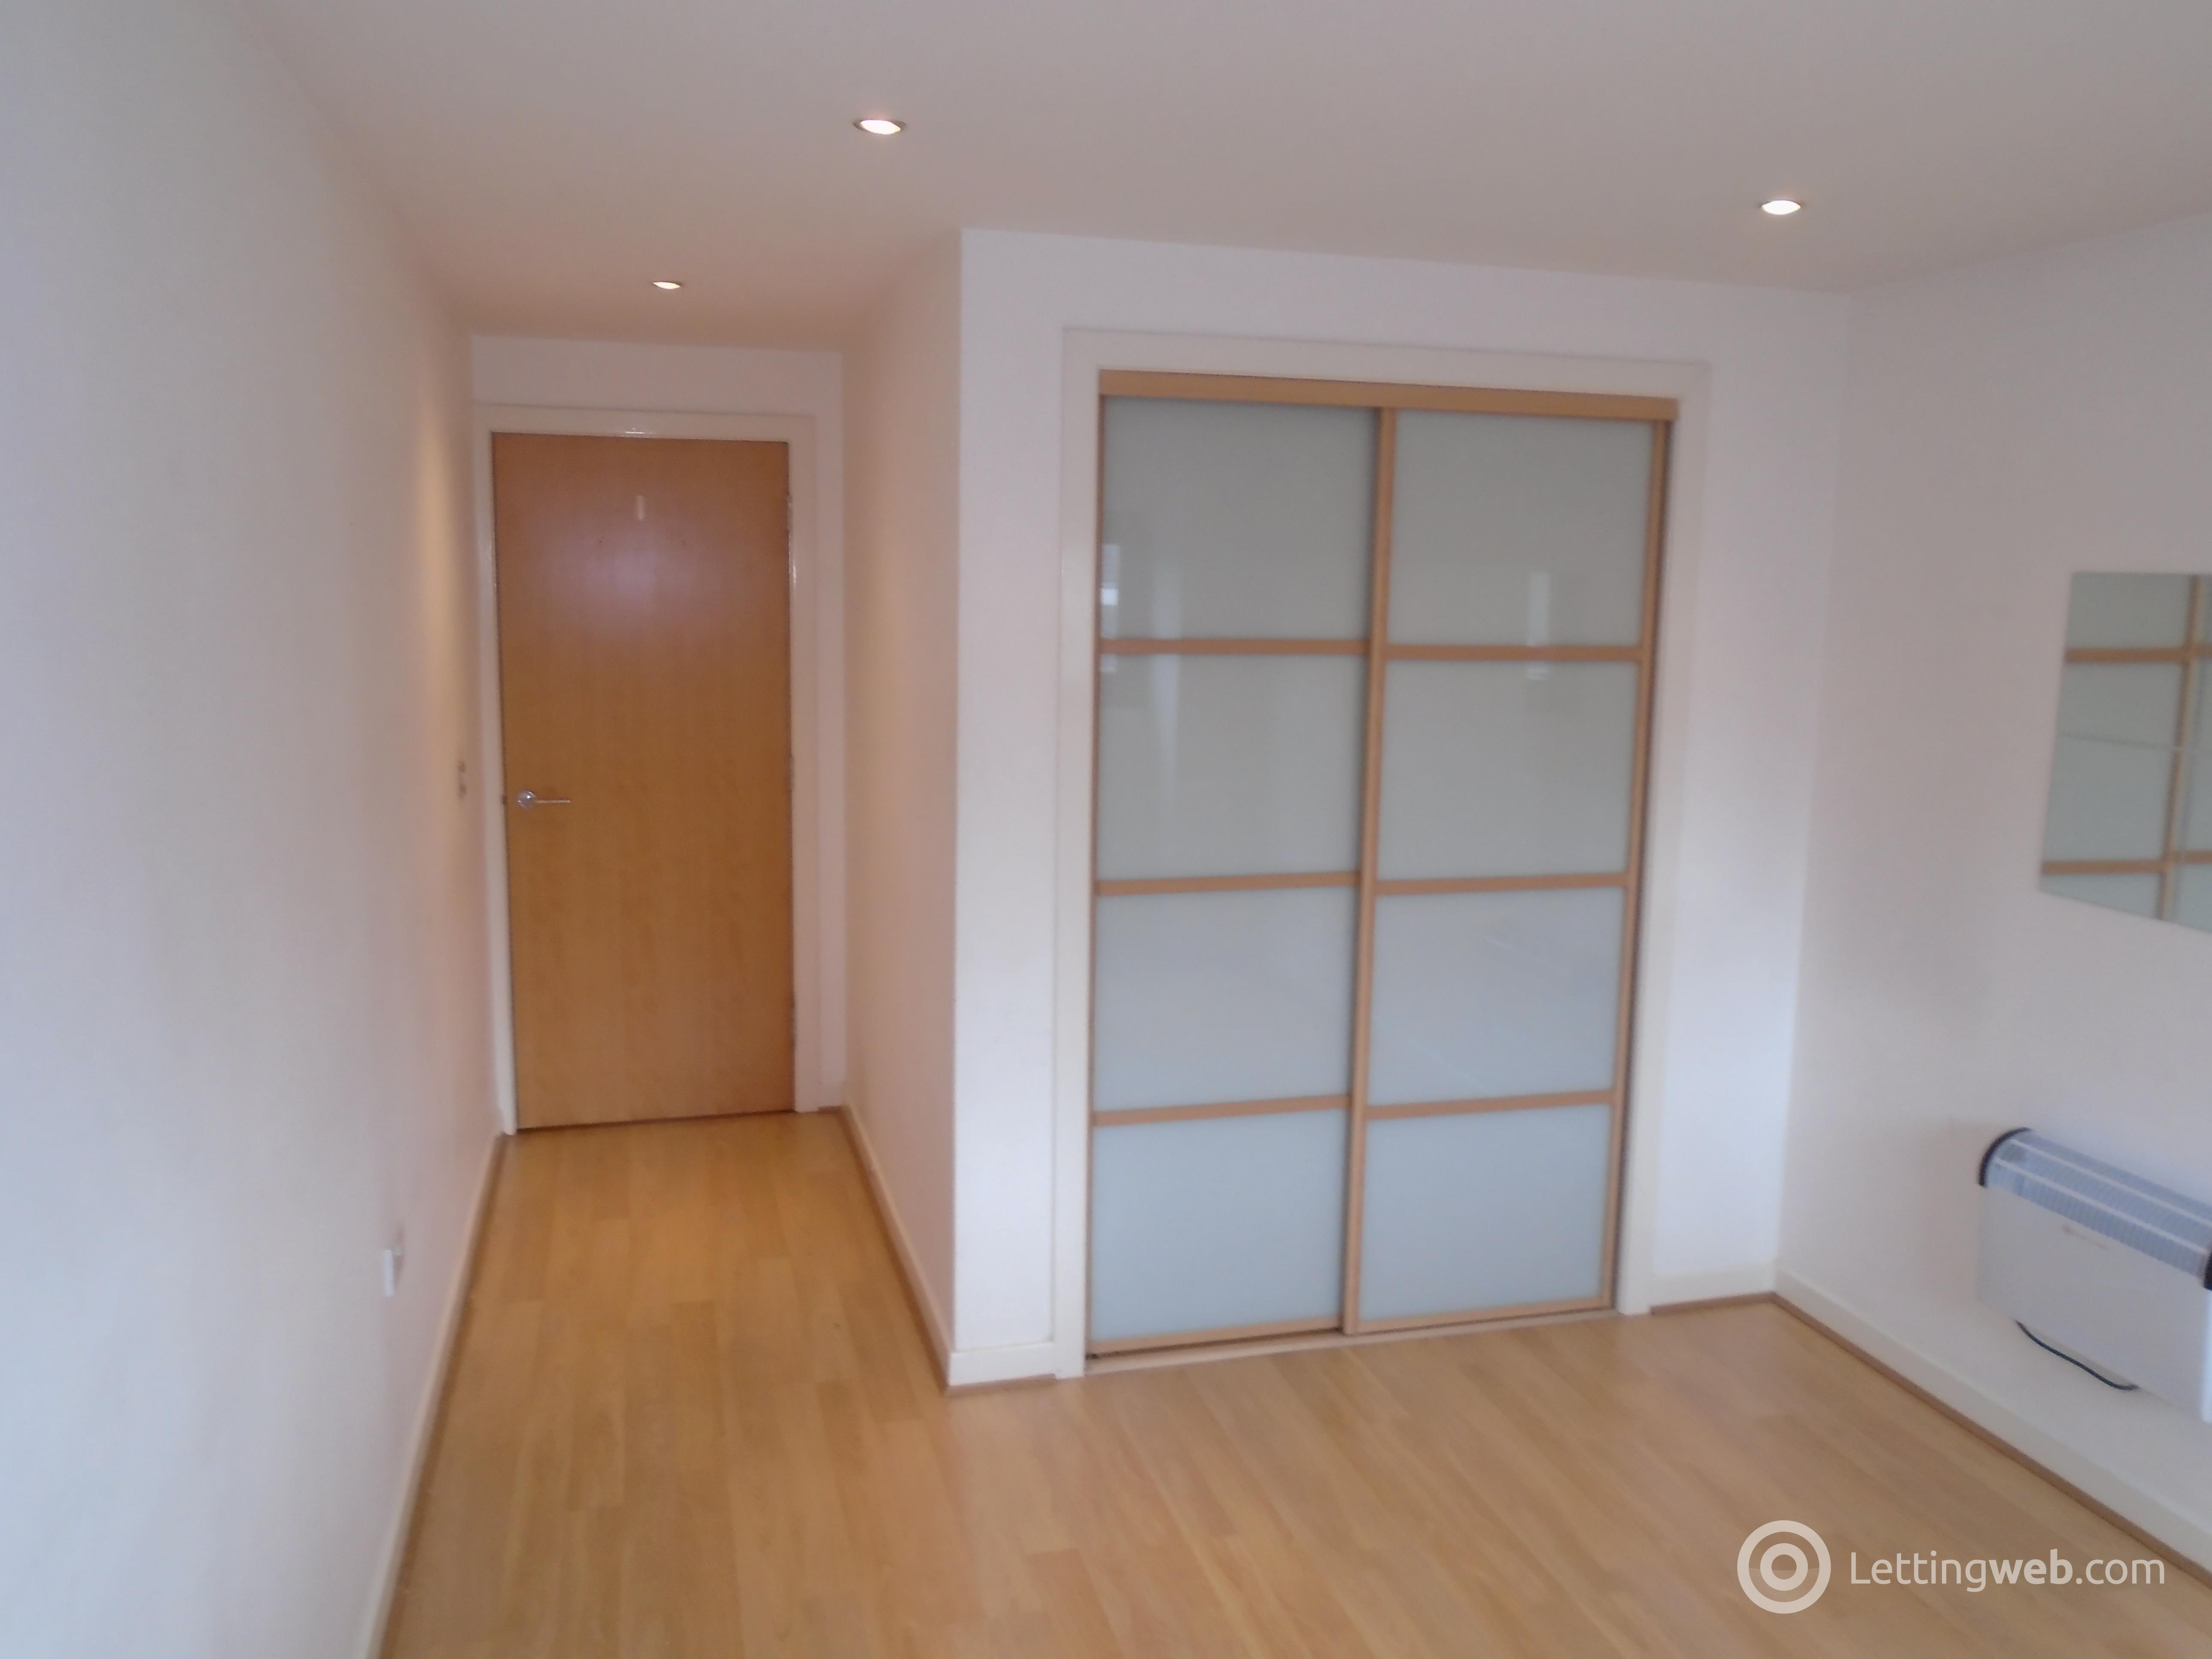 Property to rent in River Heights, Lancefield Quay, Finnieston, Glasgow, G3